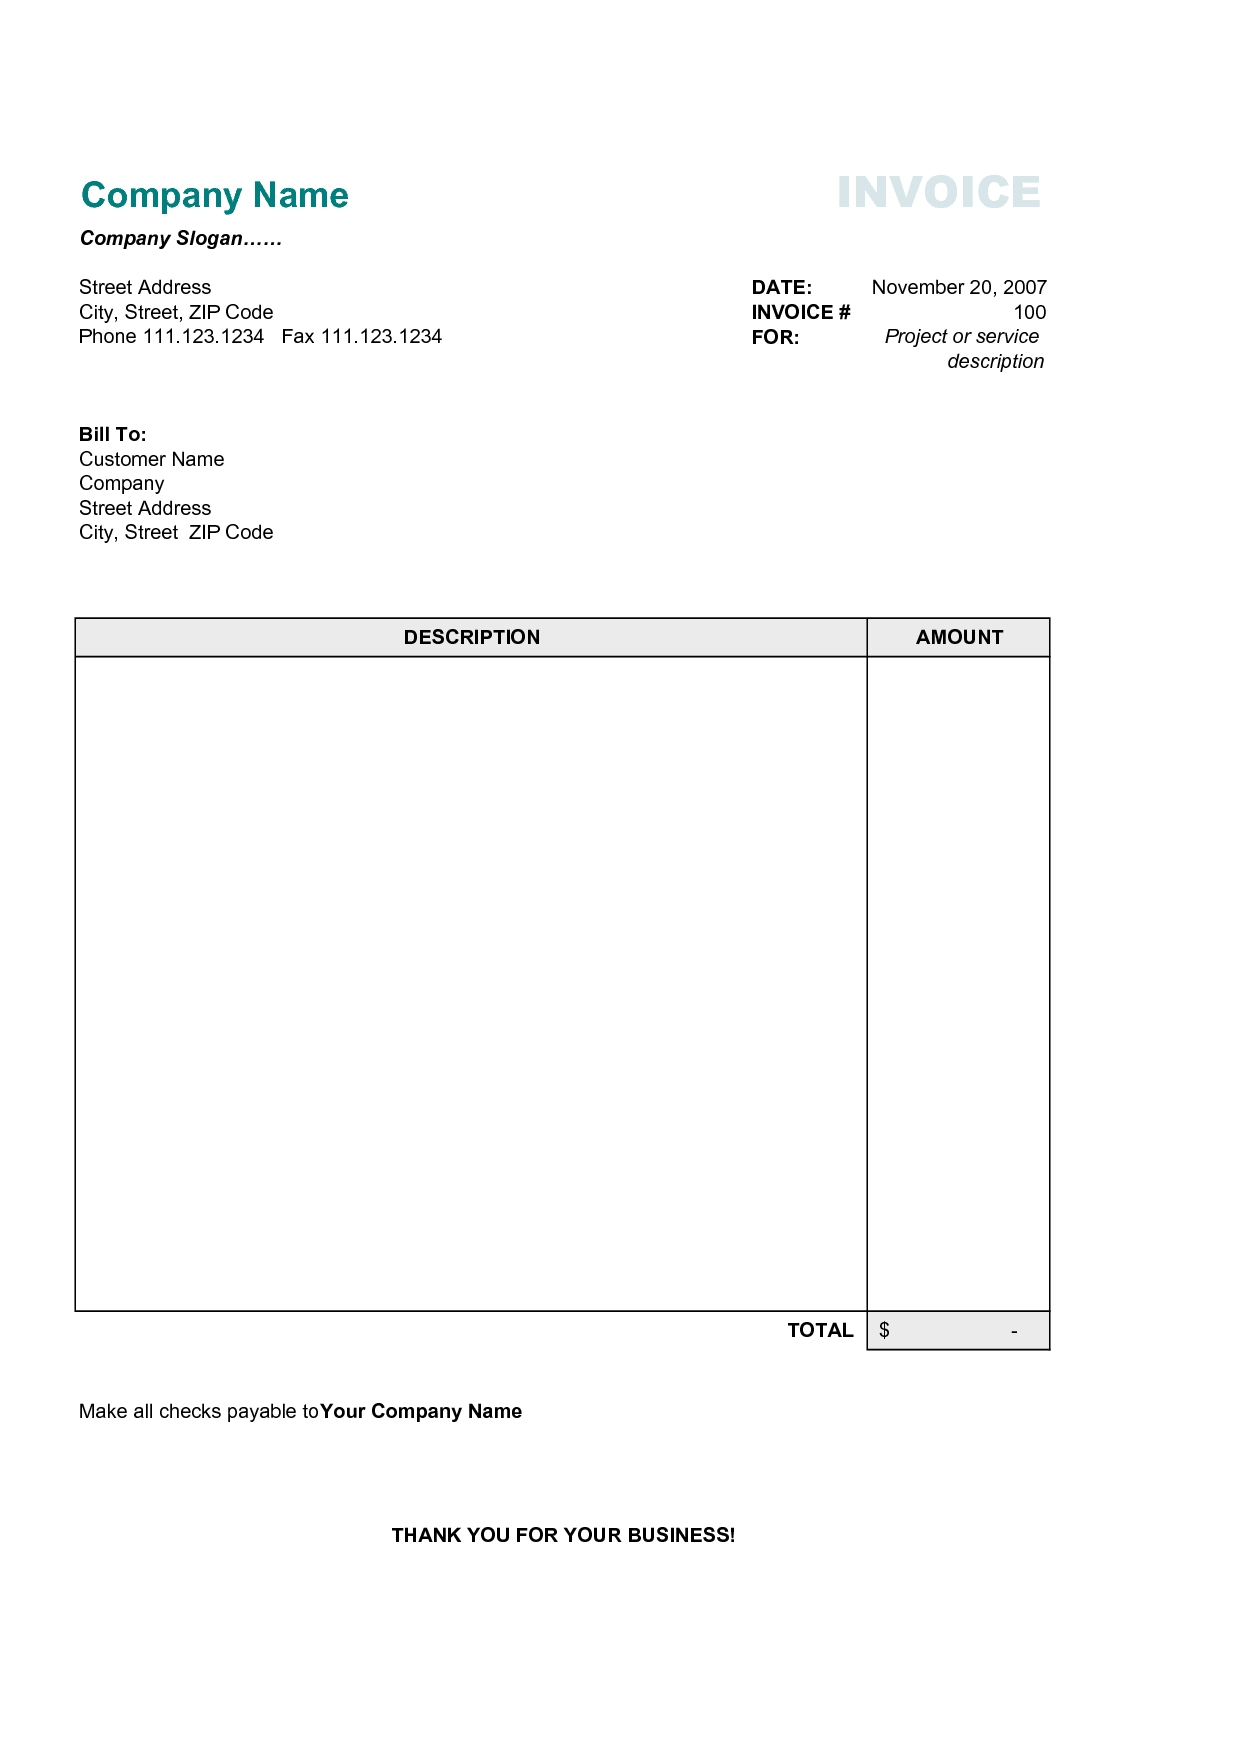 Simple Invoice Template Invoice Example - Download simple invoice template